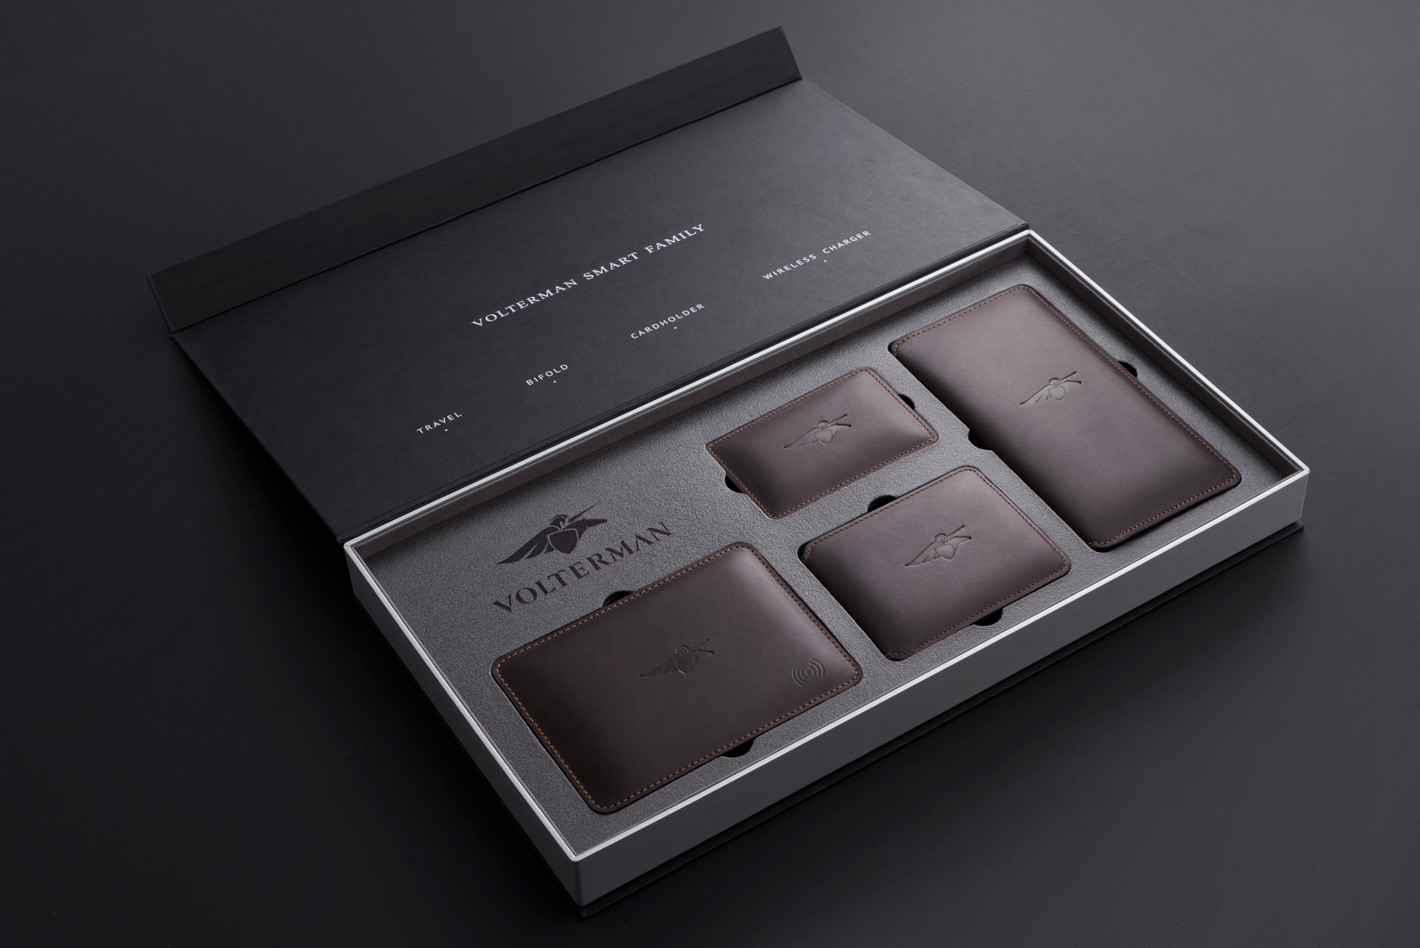 Le Meilleur Volterman Smart Wallet On Packaging Of The World Ce Mois Ci